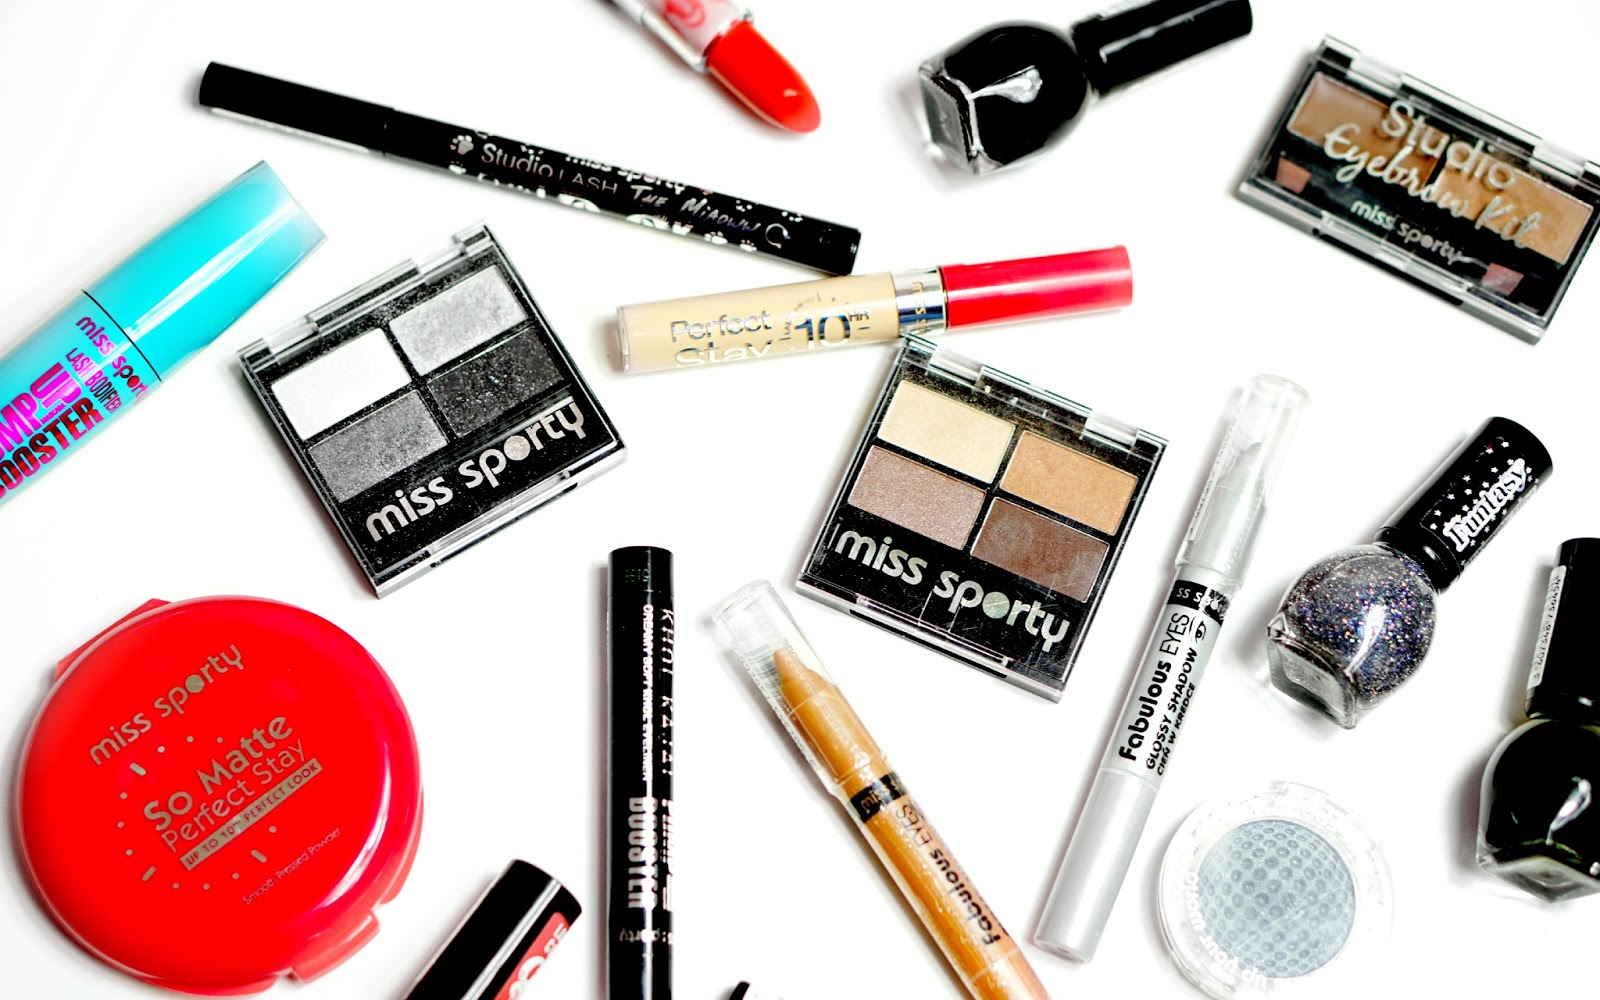 b9e84d212b7 After recently collaborating with Miss Sporty on a Christmas makeup look  video on our YouTube channel, we wanted to talk through some of our  favourite ...